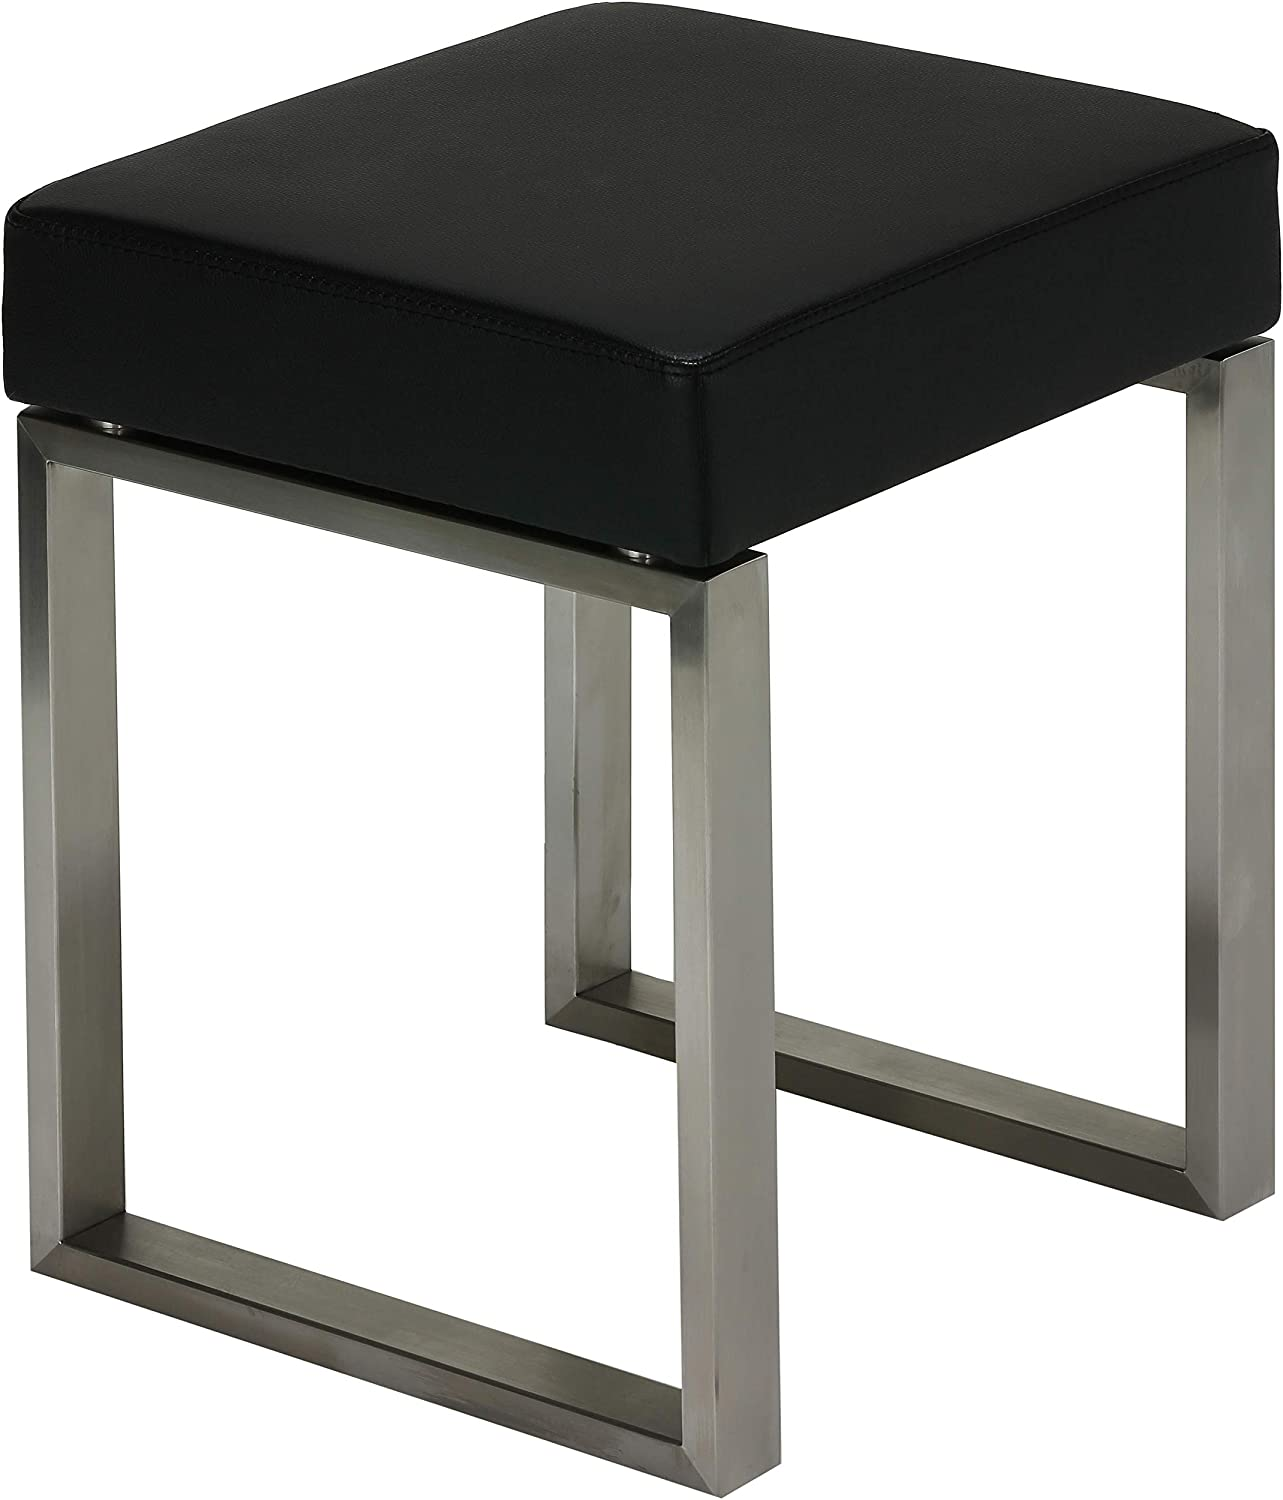 Cortesi Home Tilio Stainless Steel Stool in Black Leather Like Vinyl and Brushed Nickel, CH-CS624999